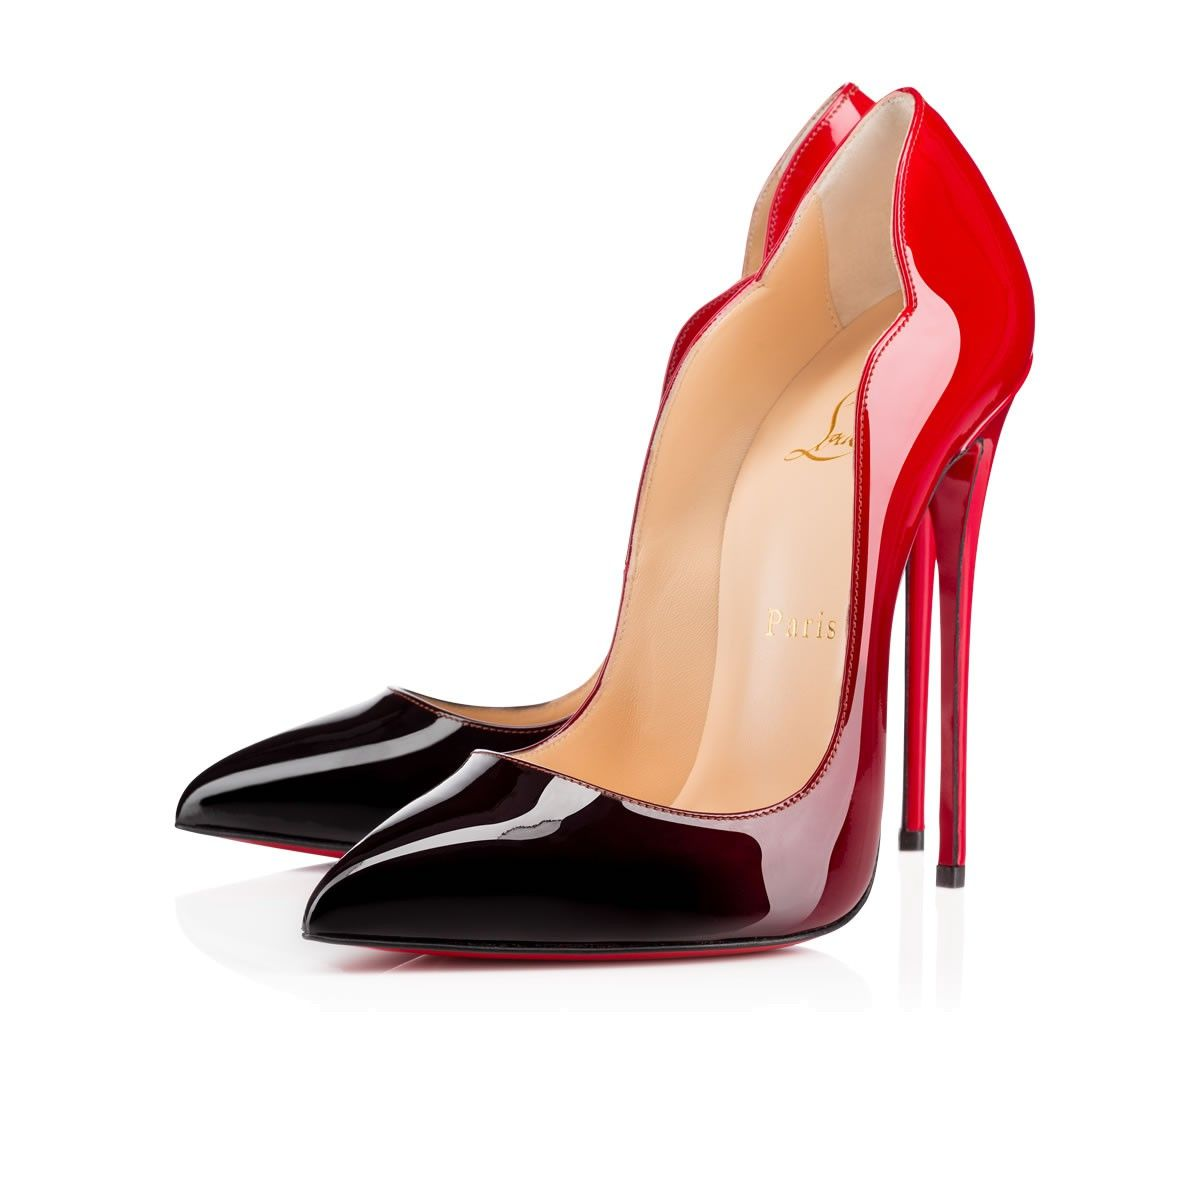 3d700bd4bfa Red to Black Ombré Christian Louboutin Red Bottoms Pointed Toe High Heels  in Hot Chick